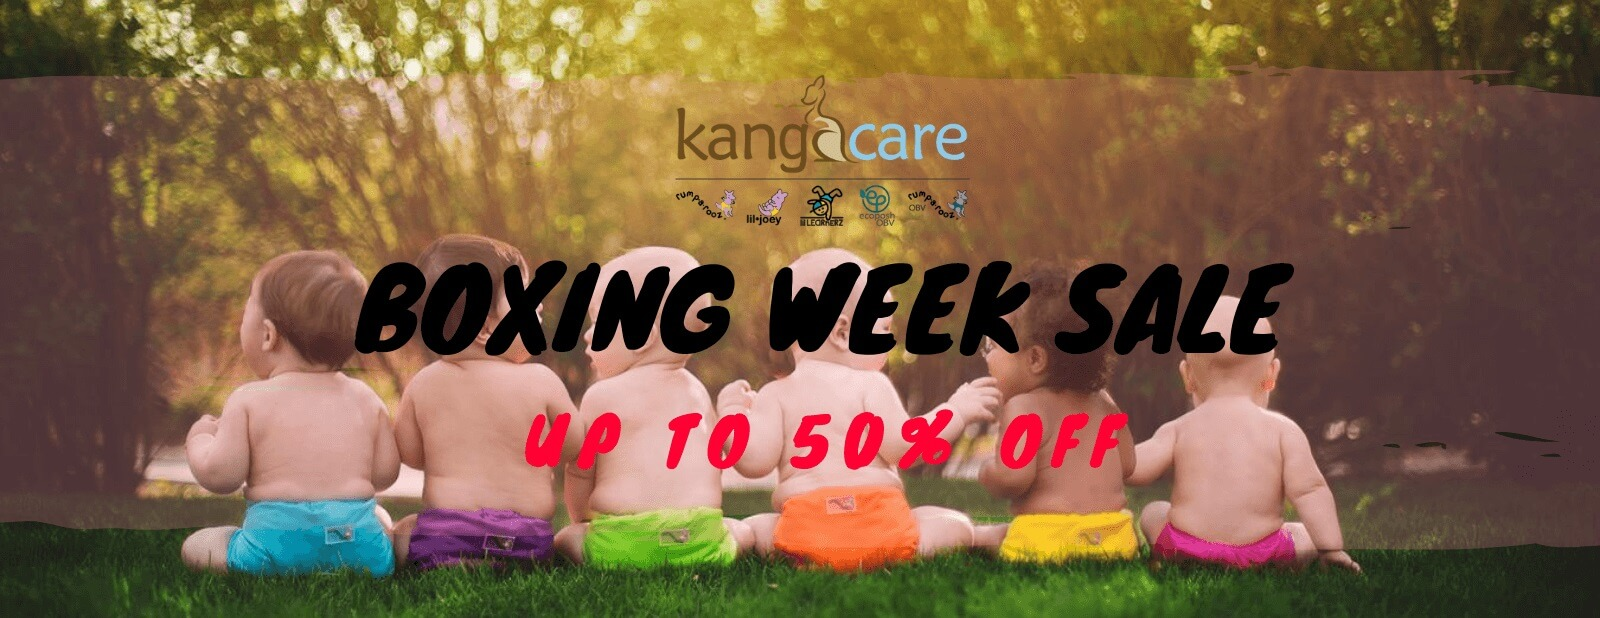 kangacare care bear cloth diapers boxing week sale